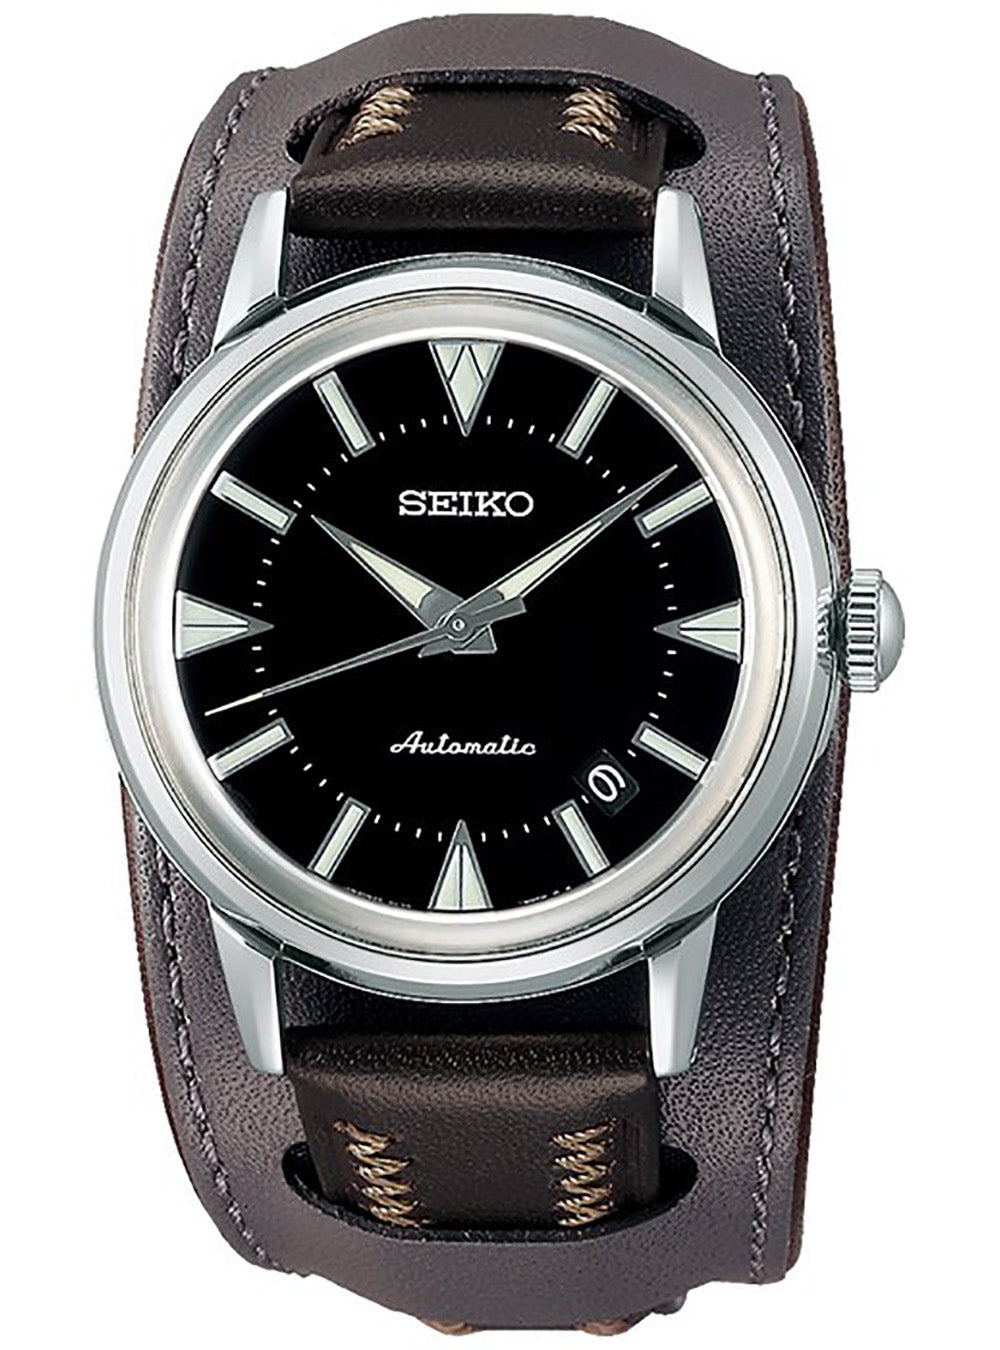 SEIKO PROSPEX The 1959 Alpinist Re-creation SBEN001 MADE IN JAPAN JDM